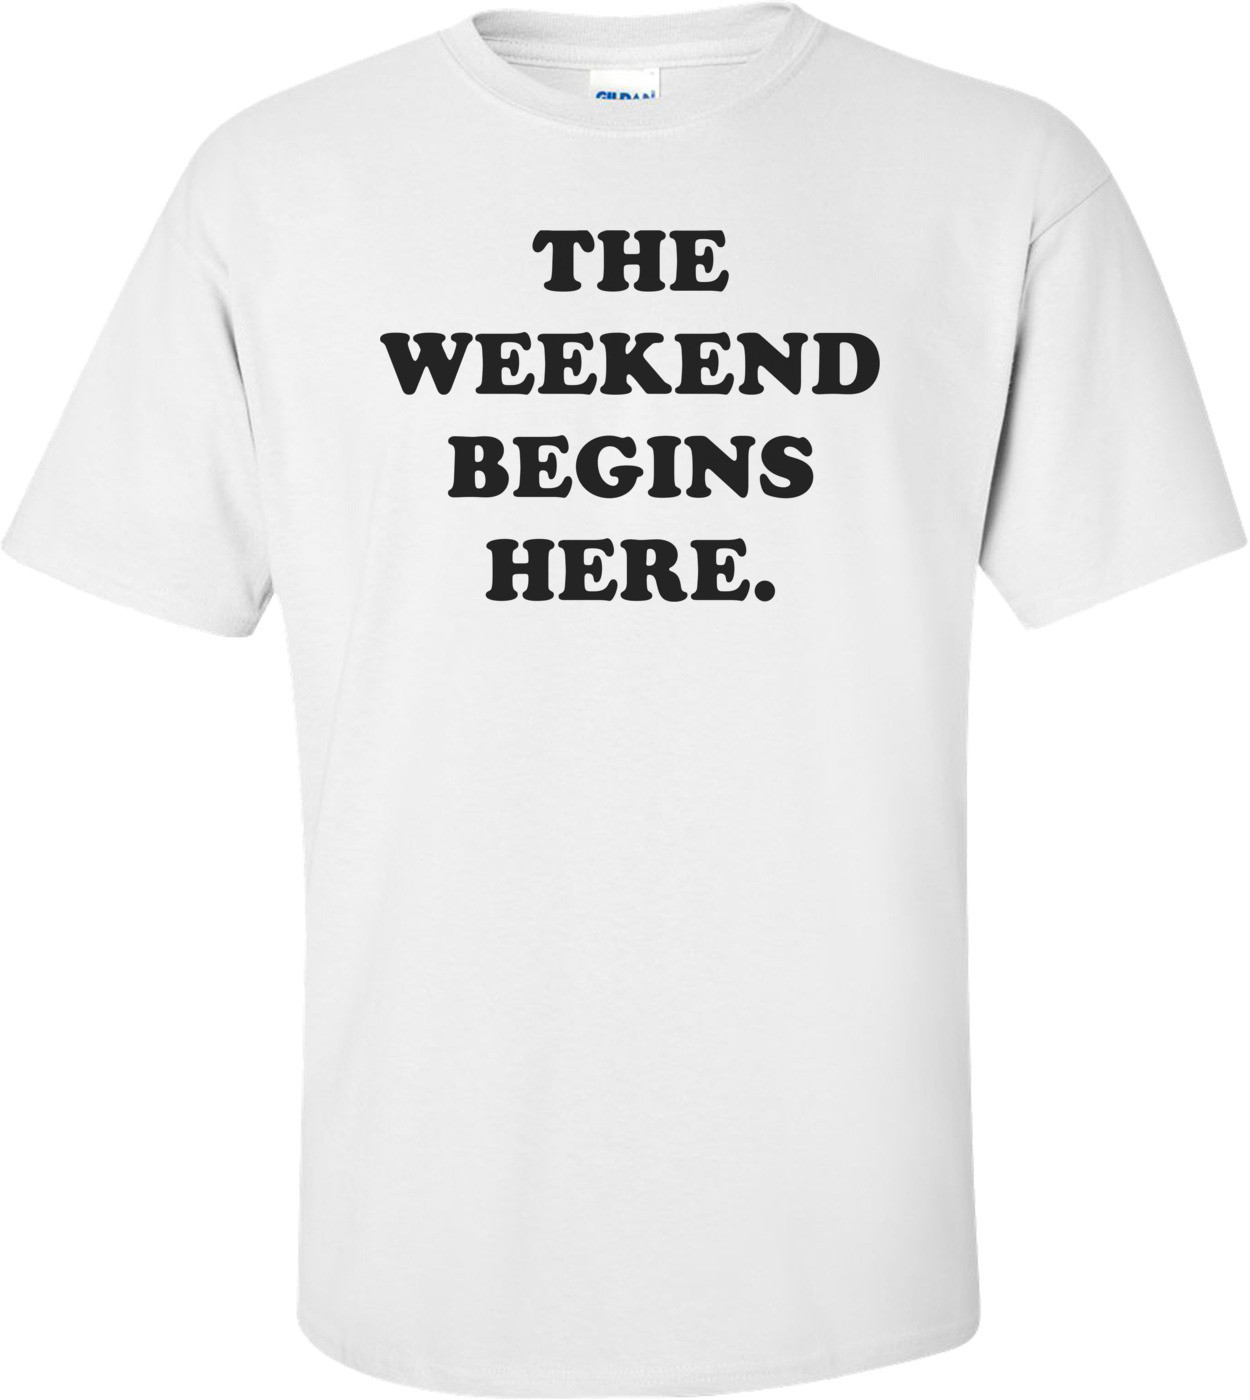 THE WEEKEND BEGINS HERE. Shirt